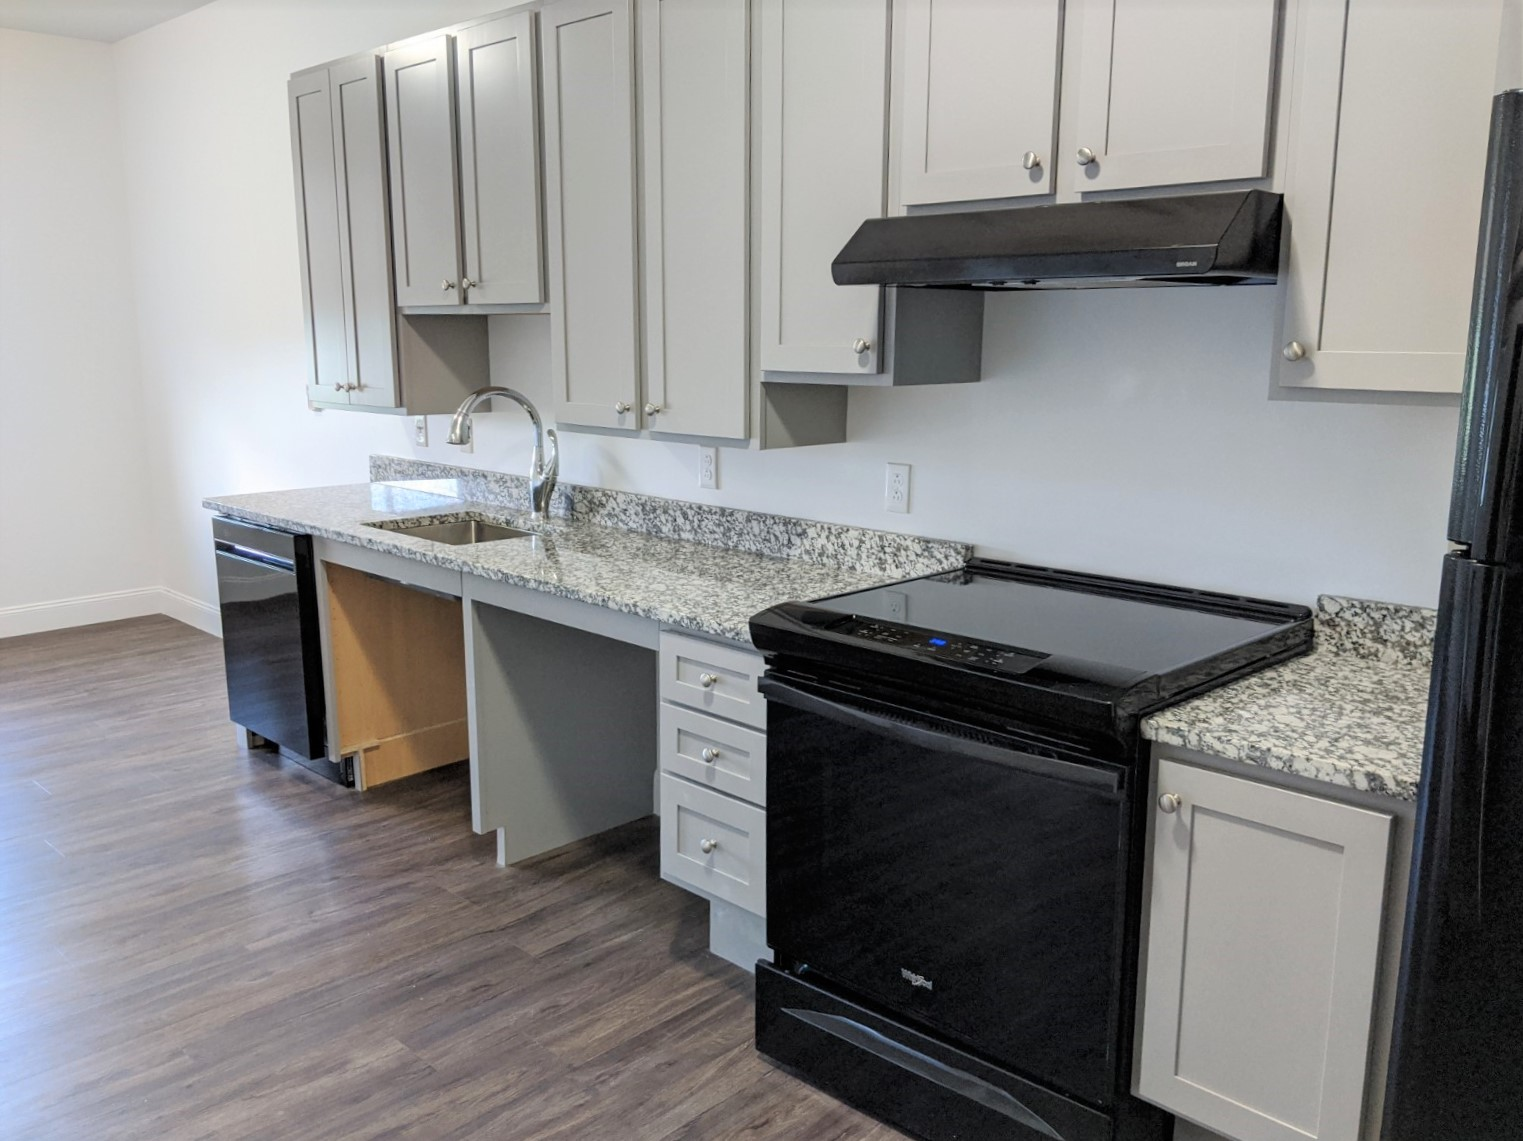 132 Marginal Way – The Linden – Apartment 229  **Newly Remodeled ADA 1 Bed with Great Views!**